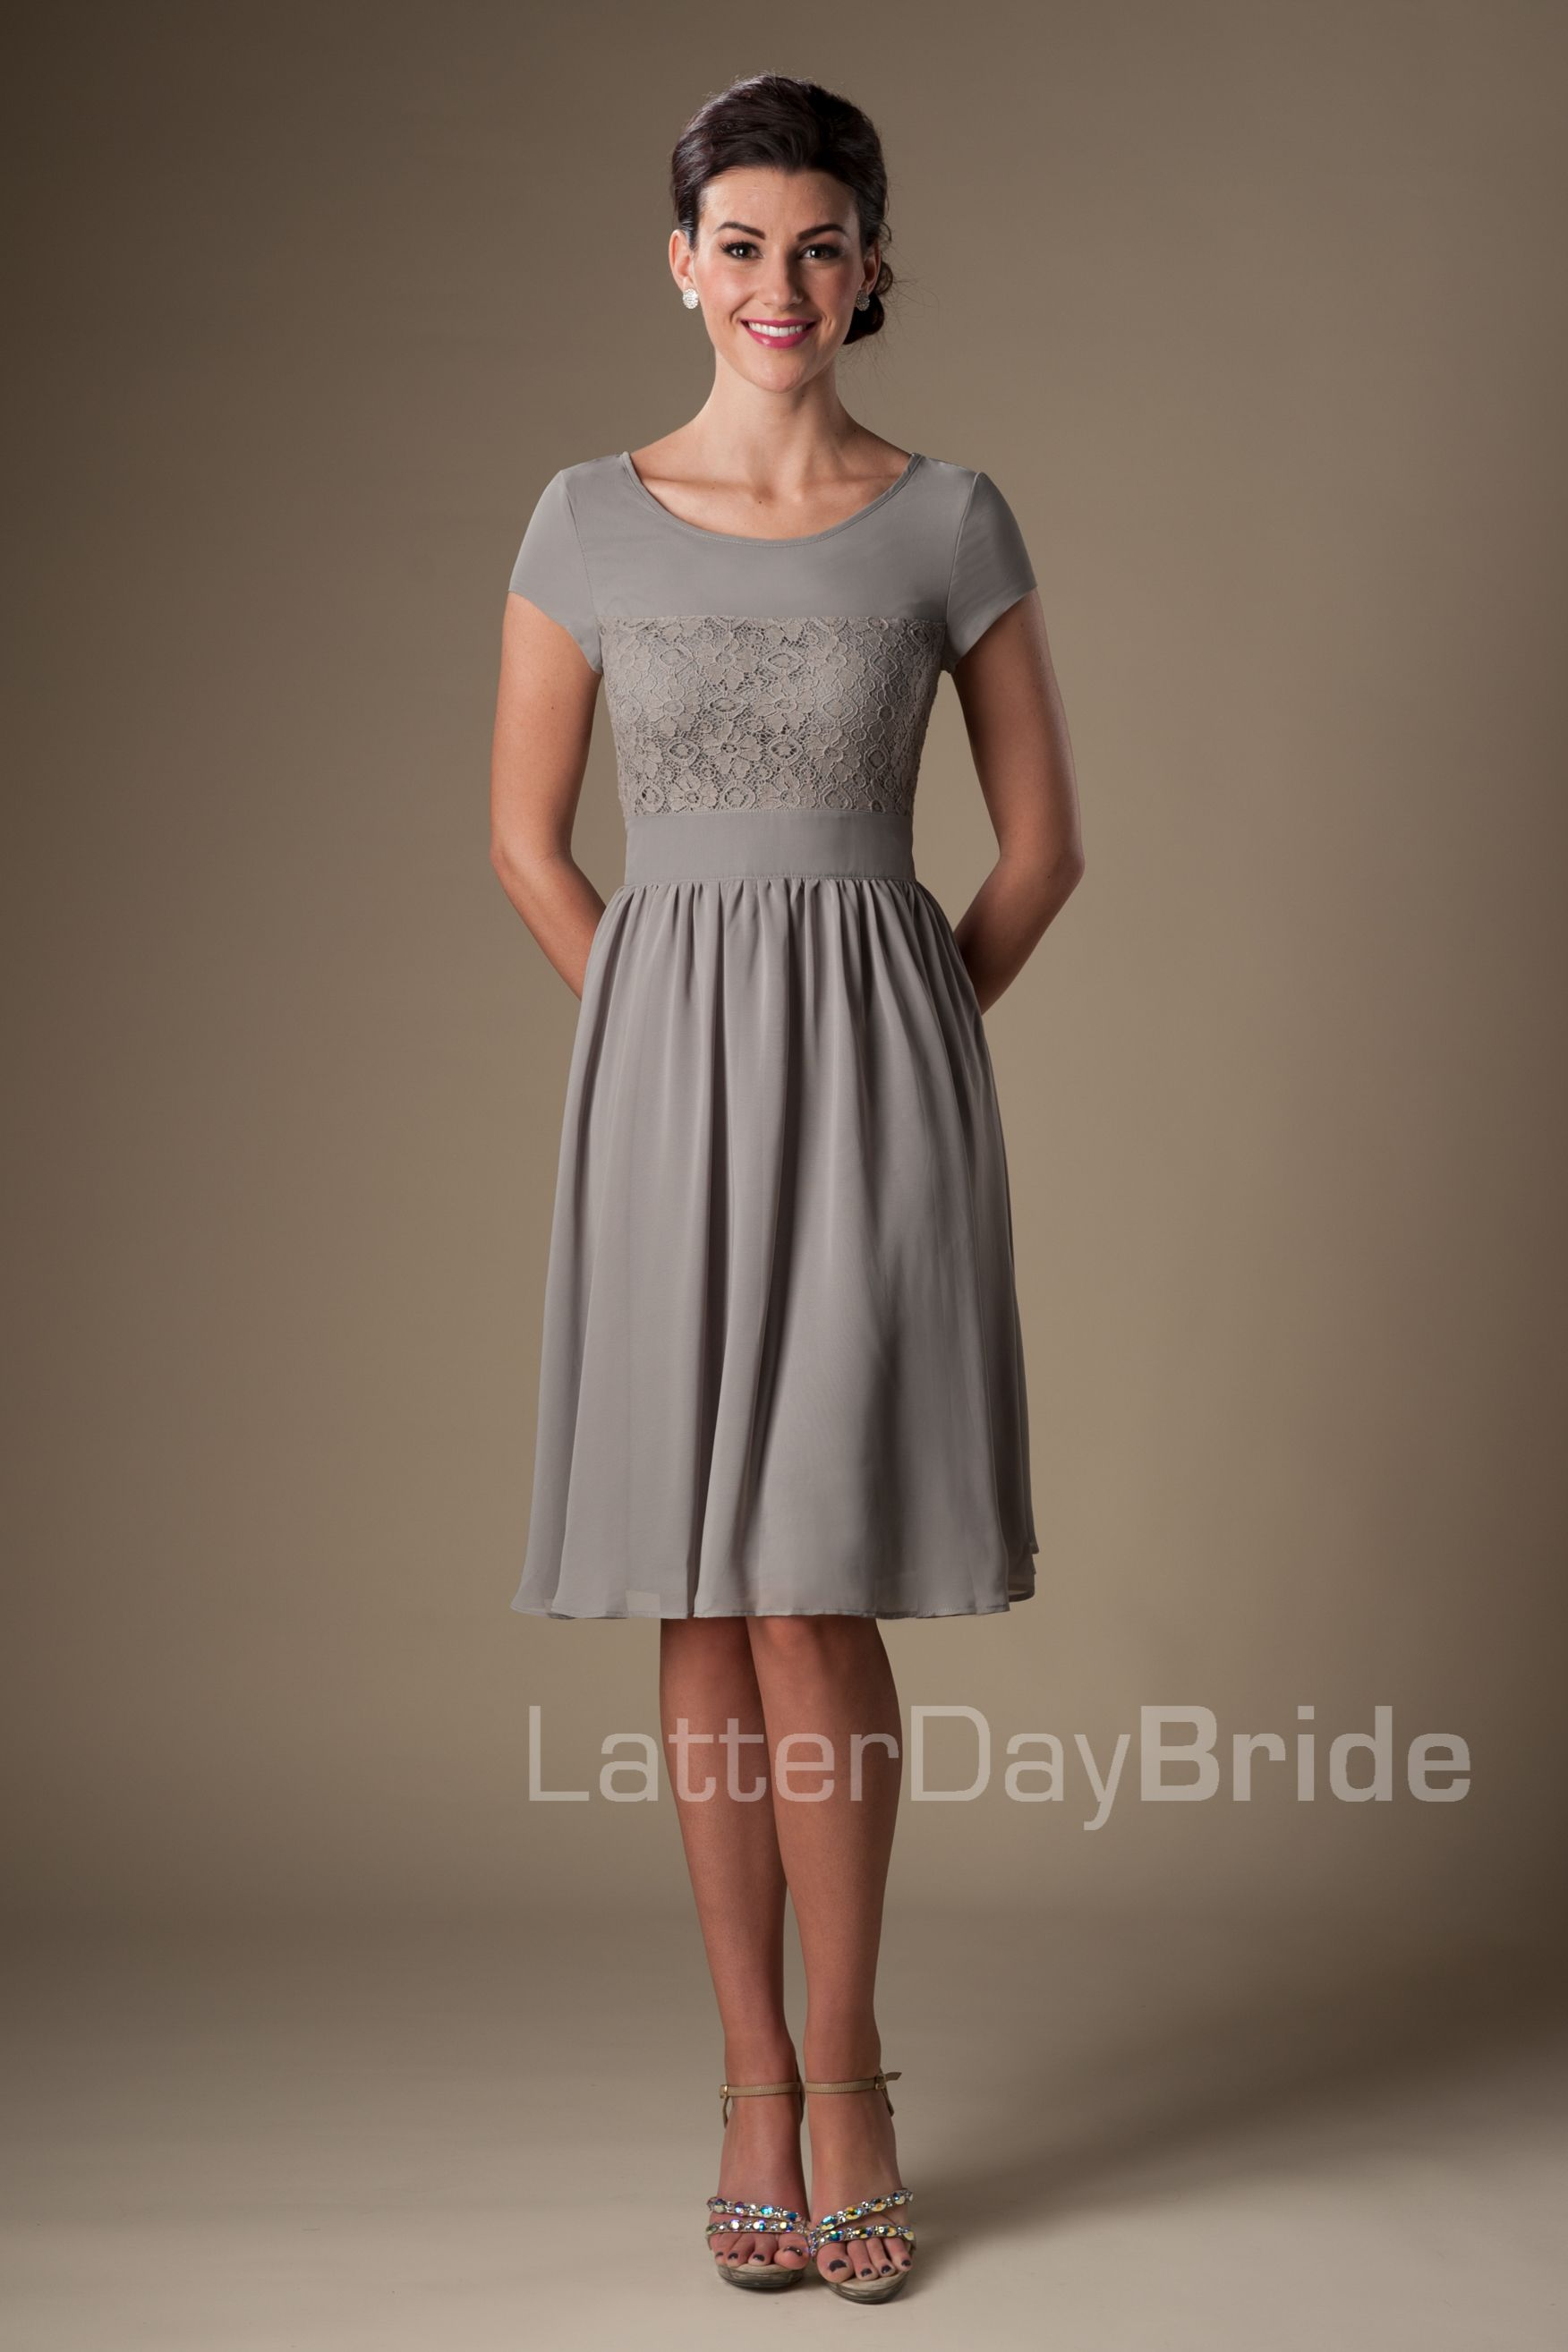 Modest bridesmaid dress from latter day bride in a lovely gray modest bridesmaid dress from latter day bride in a lovely gray that can be worn to ombrellifo Image collections